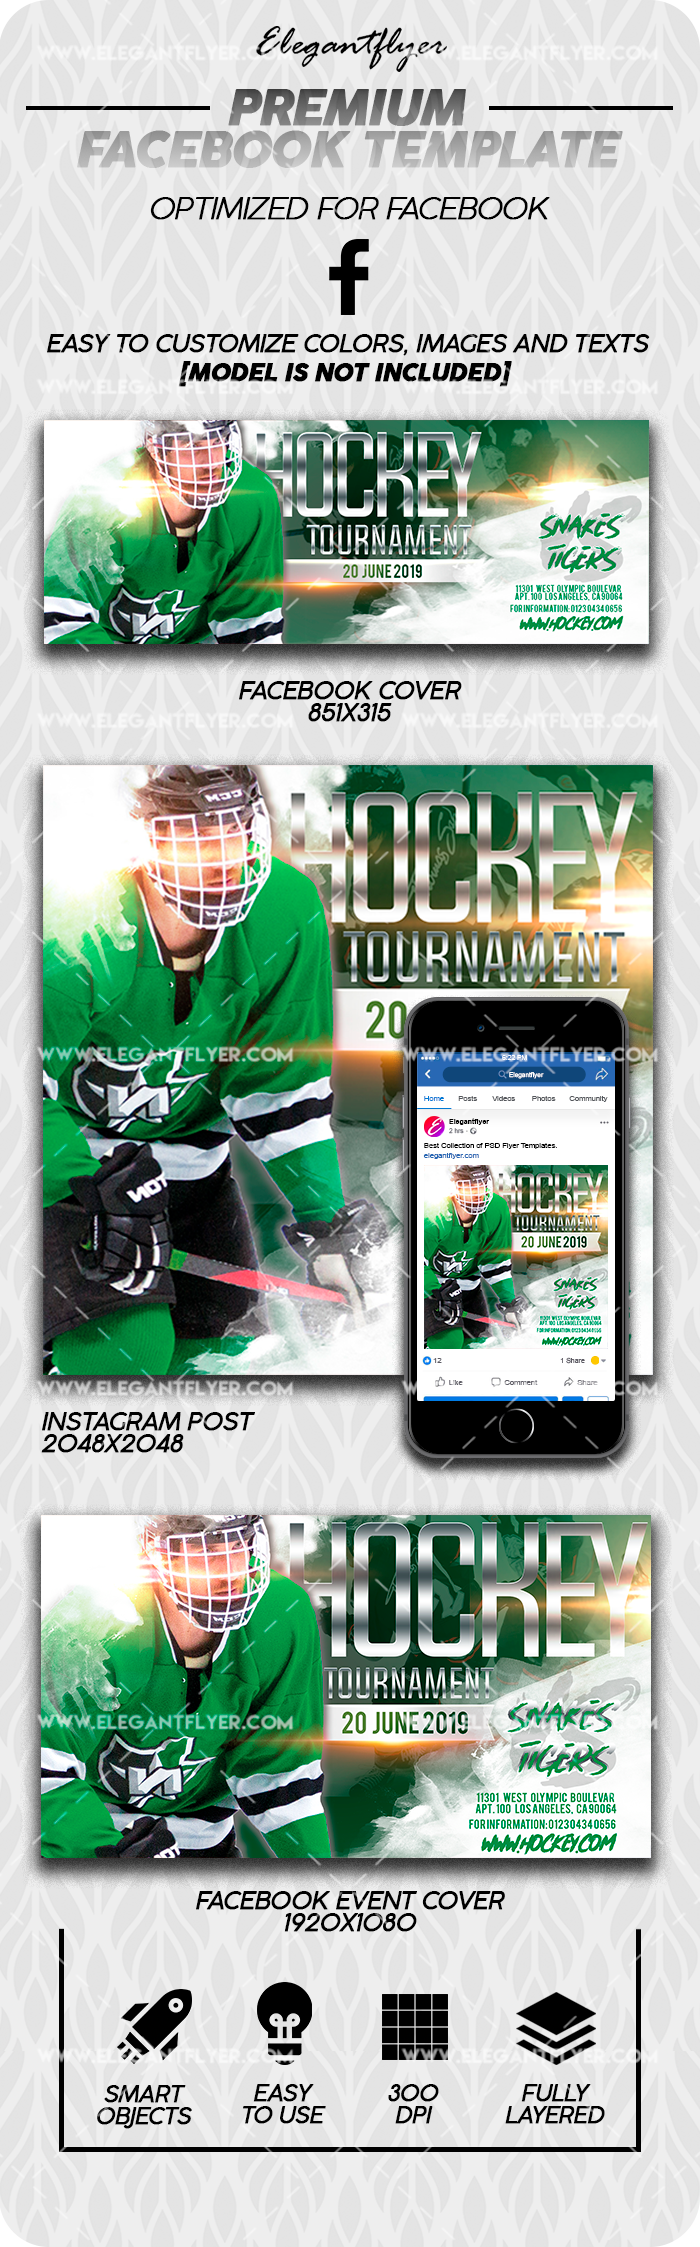 Hockey Tournament – Premium Facebook Cover Template in PSD + Post + Event cover